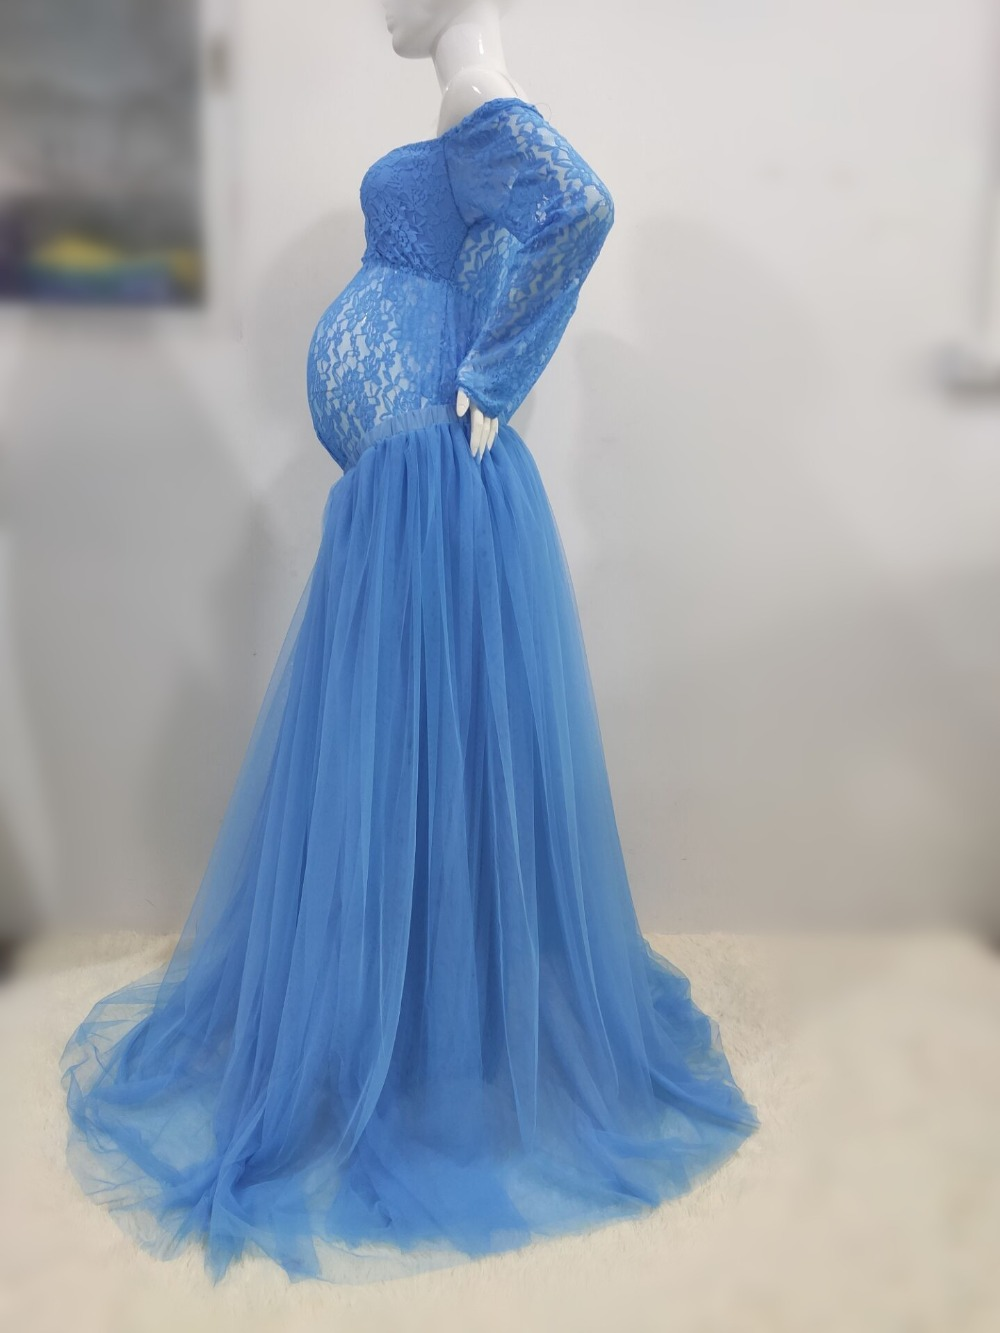 Sexy Lace Maternity Photography Props Long Dress Baby Shower Fancy Pregnancy Dress Photo Shoot For Pregnant Women Mesh Maxi Gown (13)